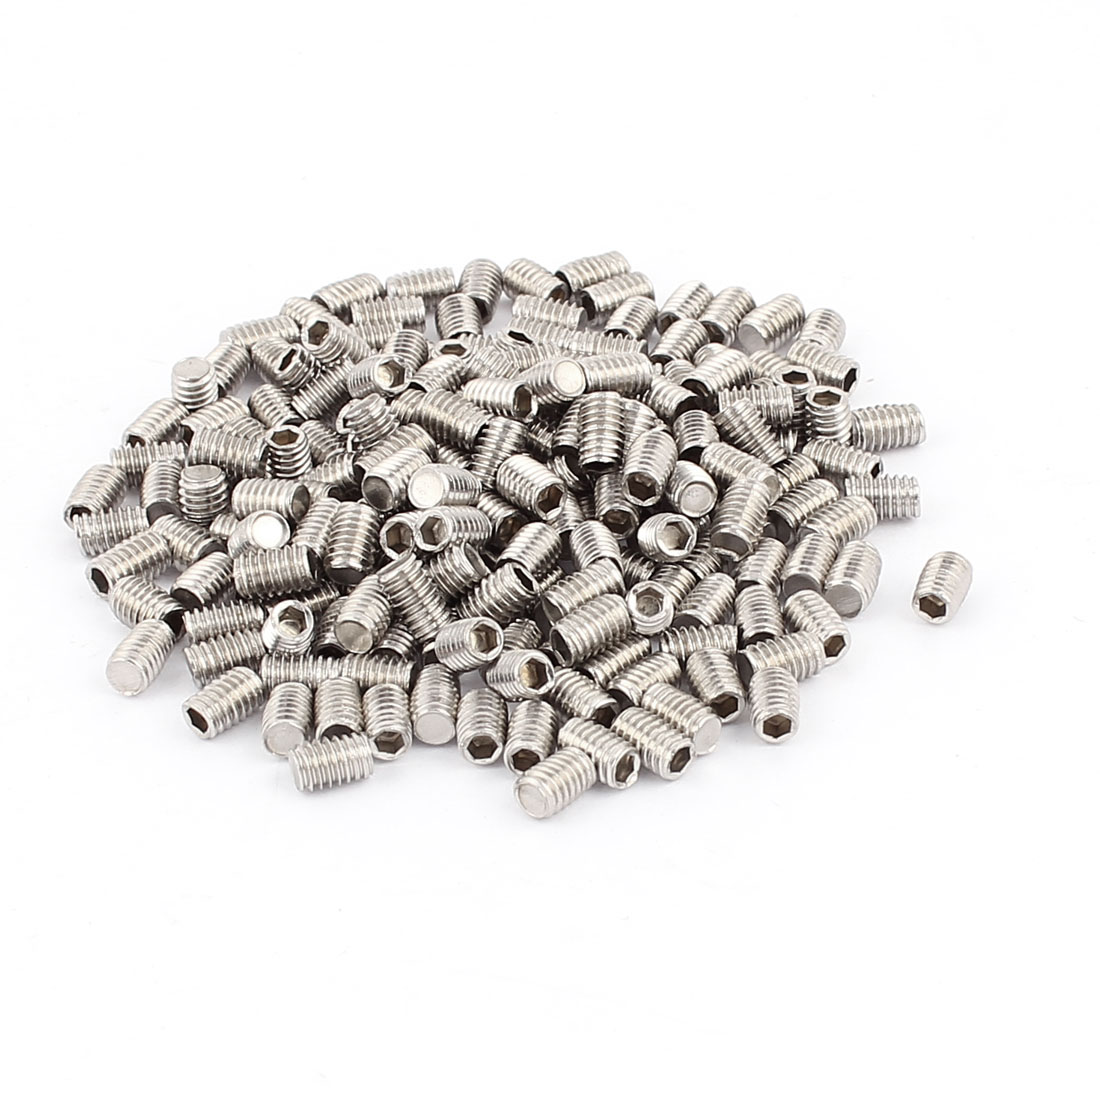 200pcs M4x6mm Hex Socket Set Flat Point Grub Screws Washers